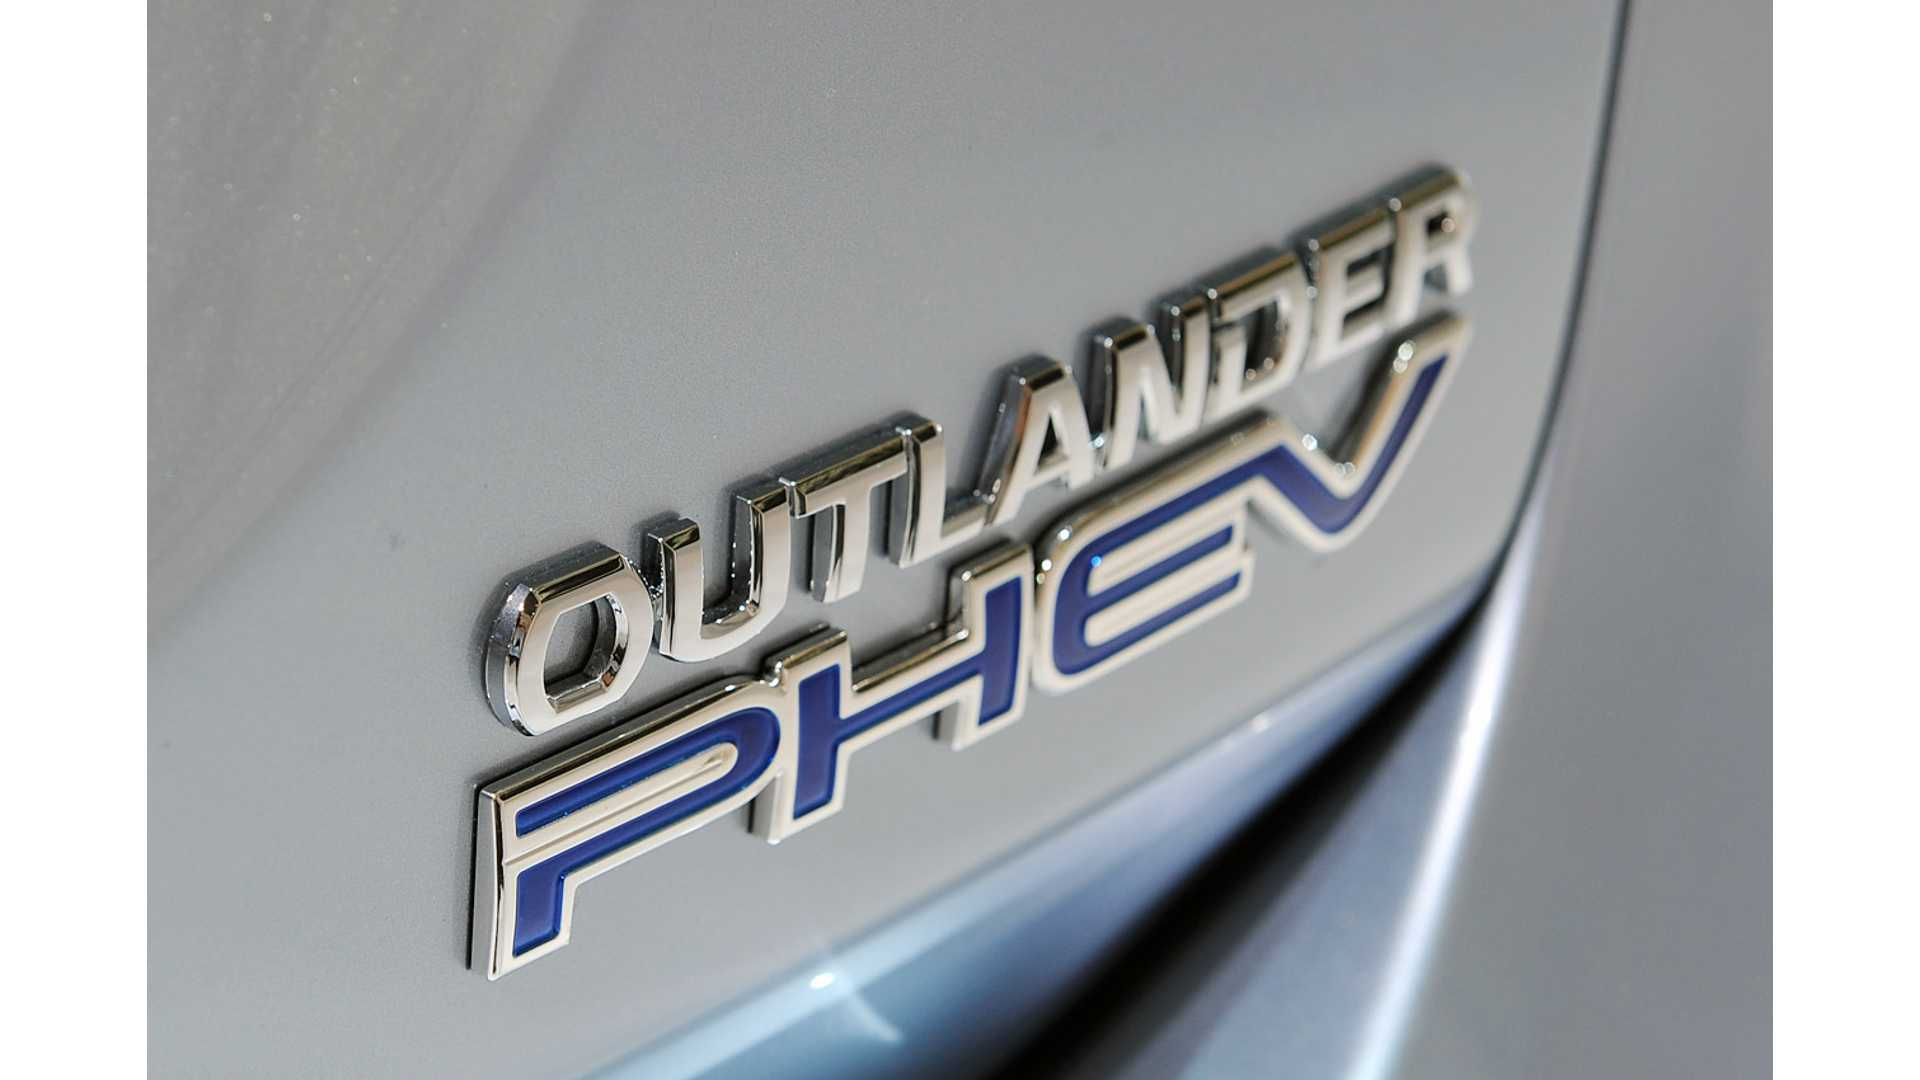 Mitsubishi Determines Battery Issue In Outlander PHEV, While